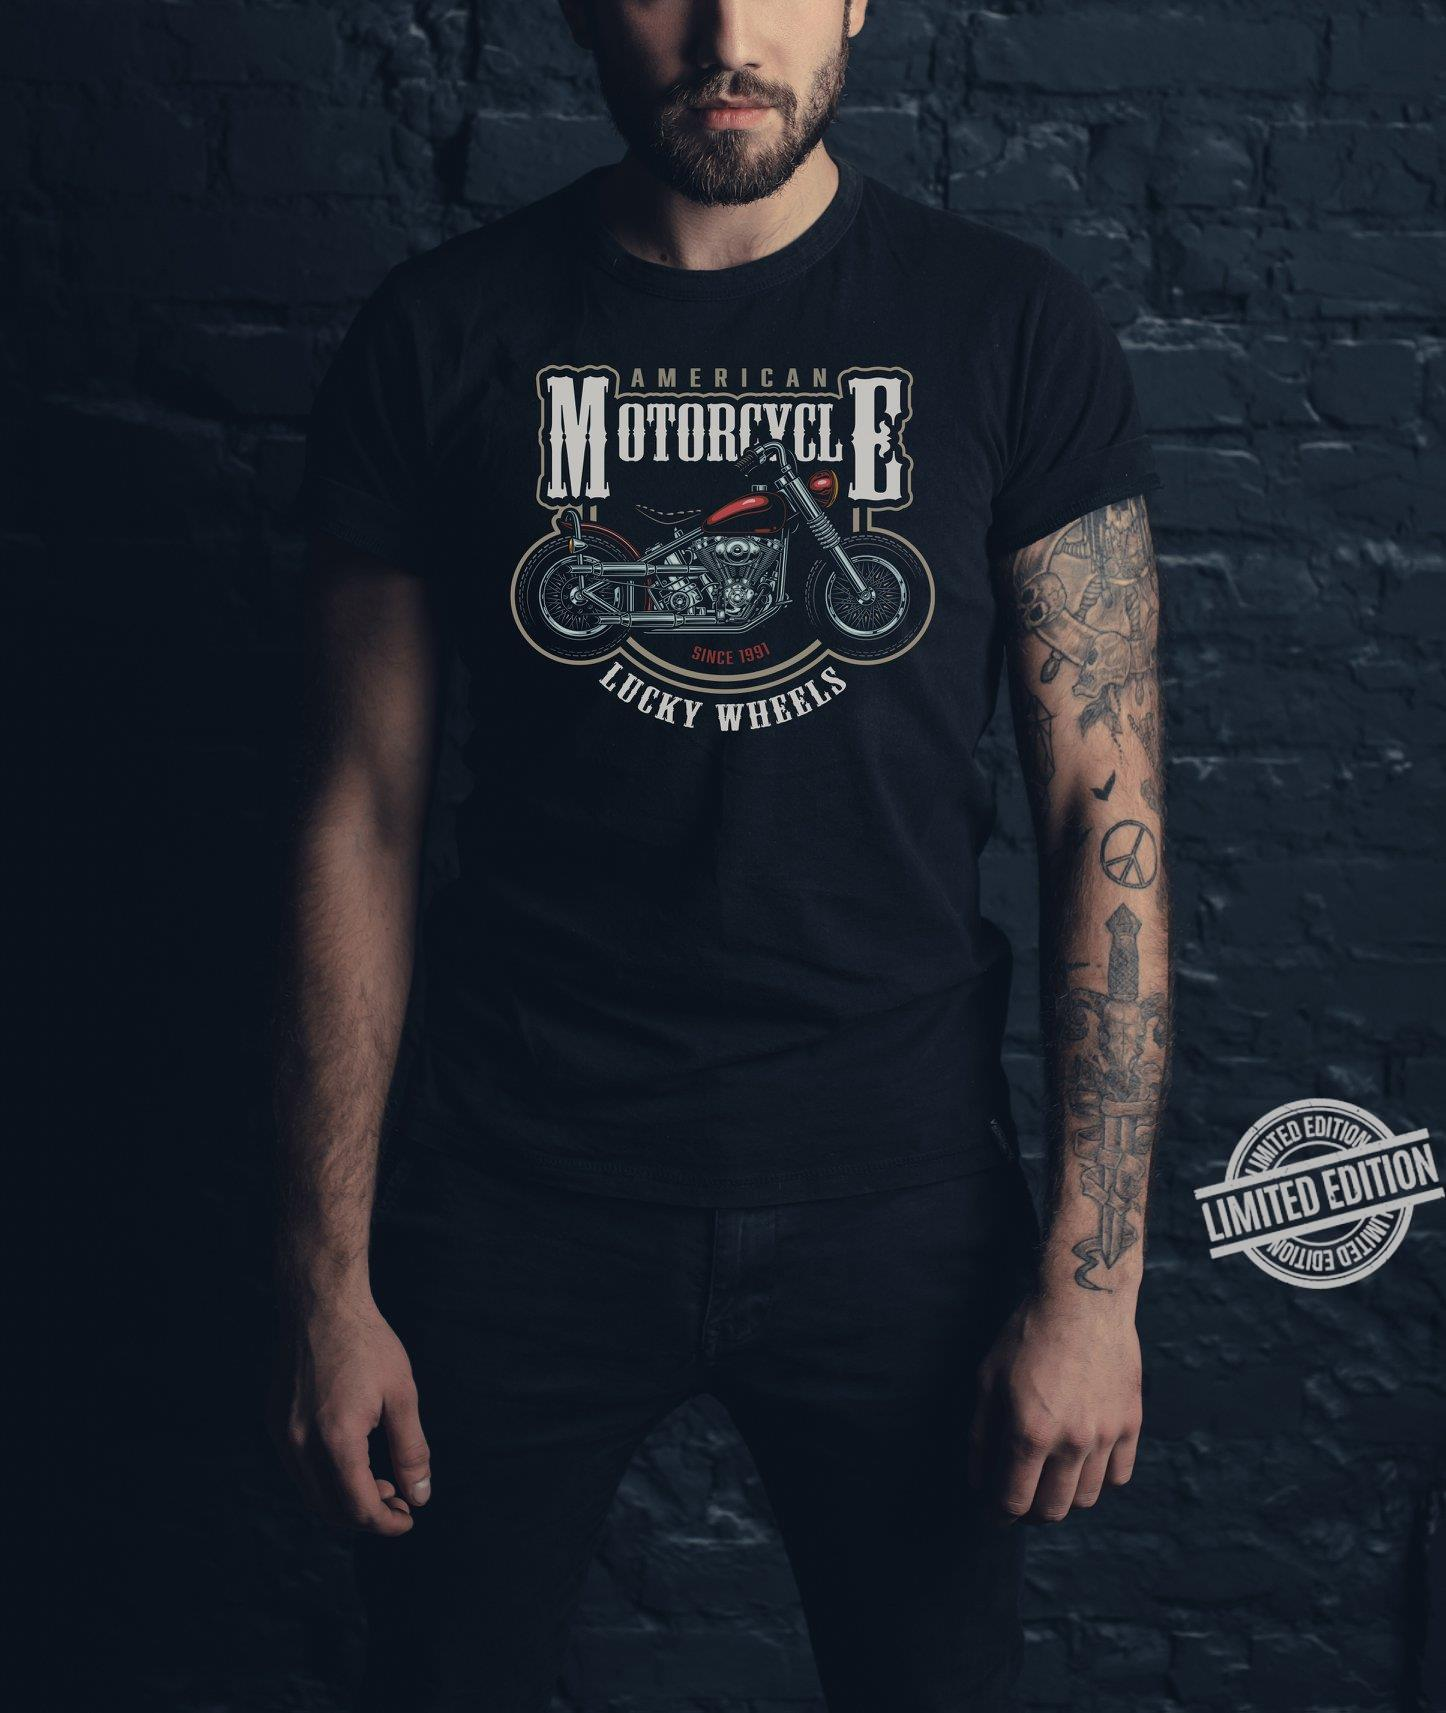 American Motorcycle Lucky Wheels Shirt